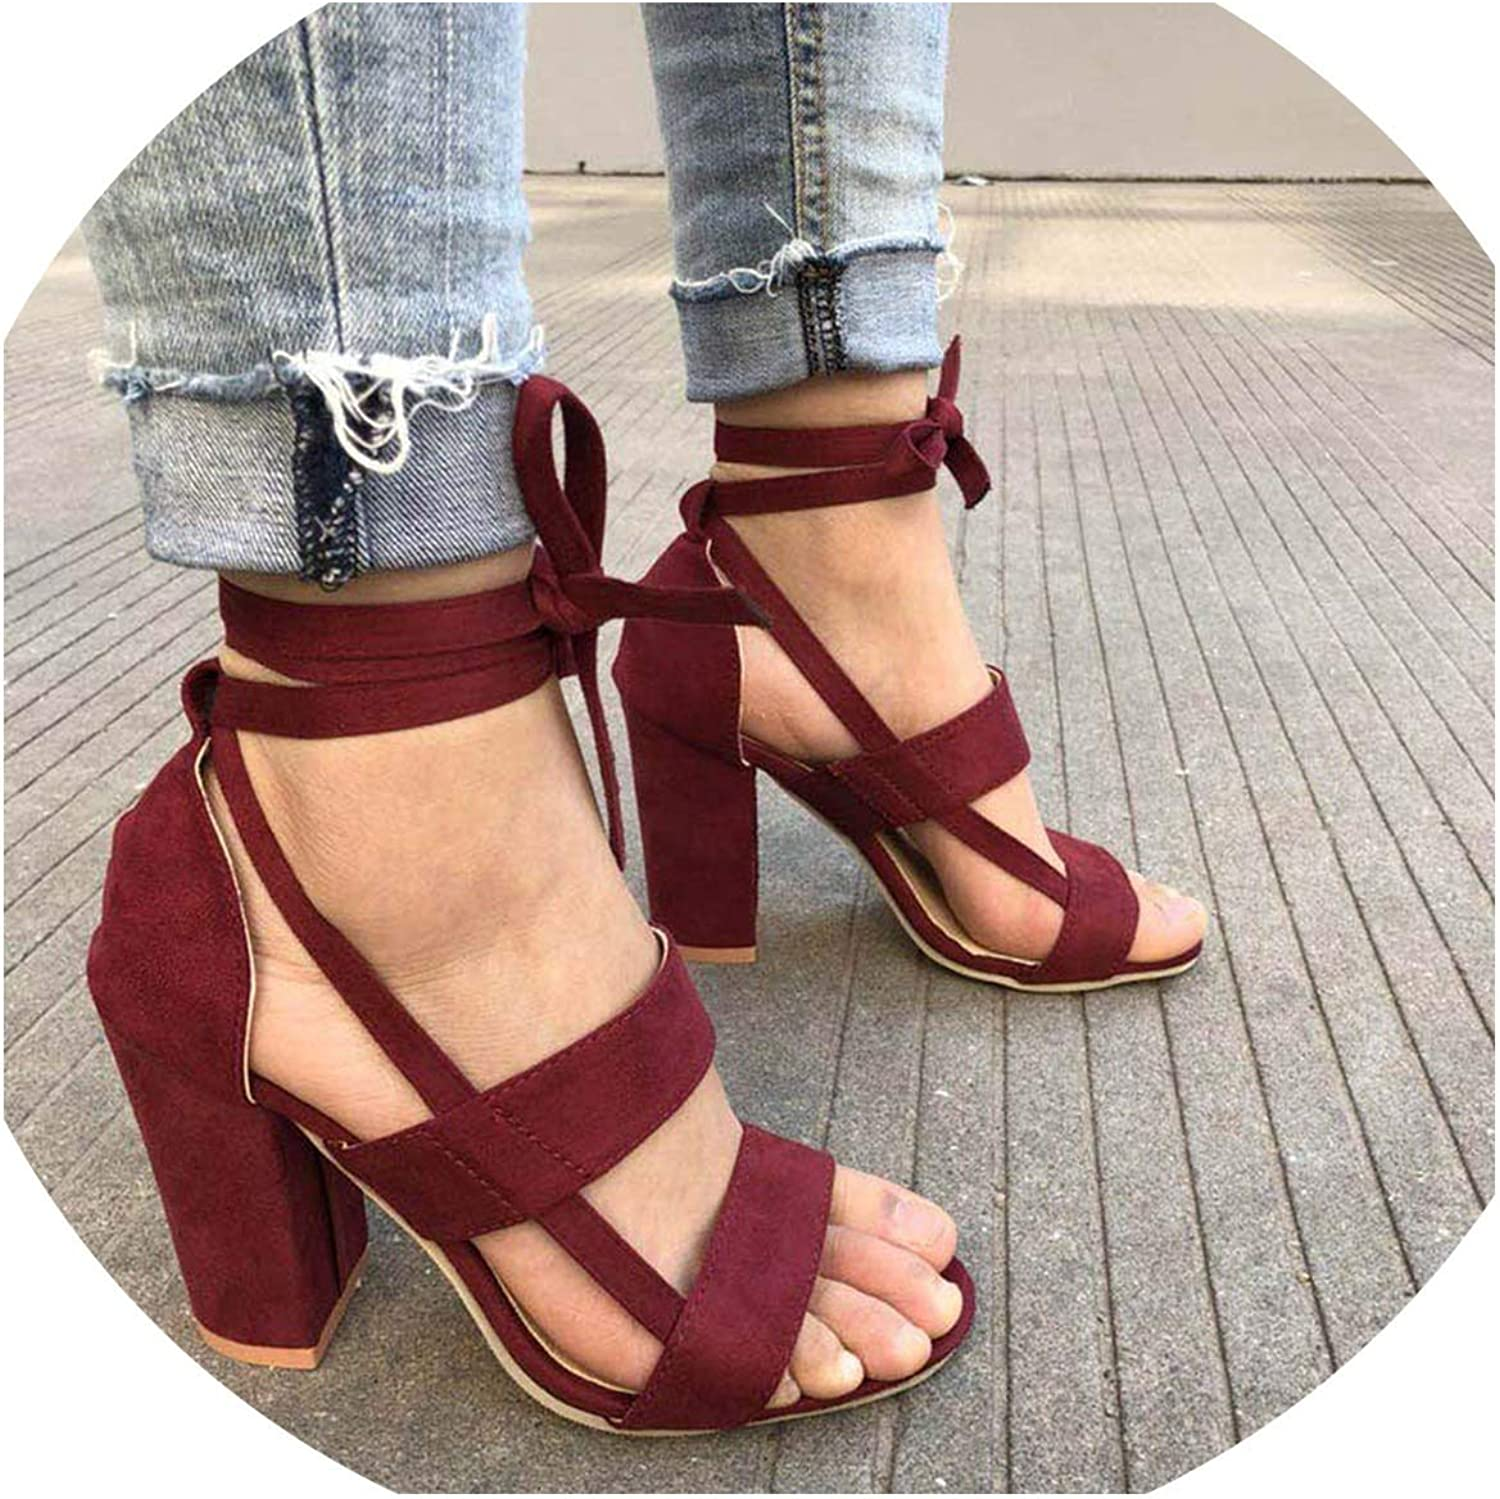 Monica's house Plus Size Female Ankle Strap High Heels shoes Thick Heel for Women Party Wedding,Wine Red-D2312,9